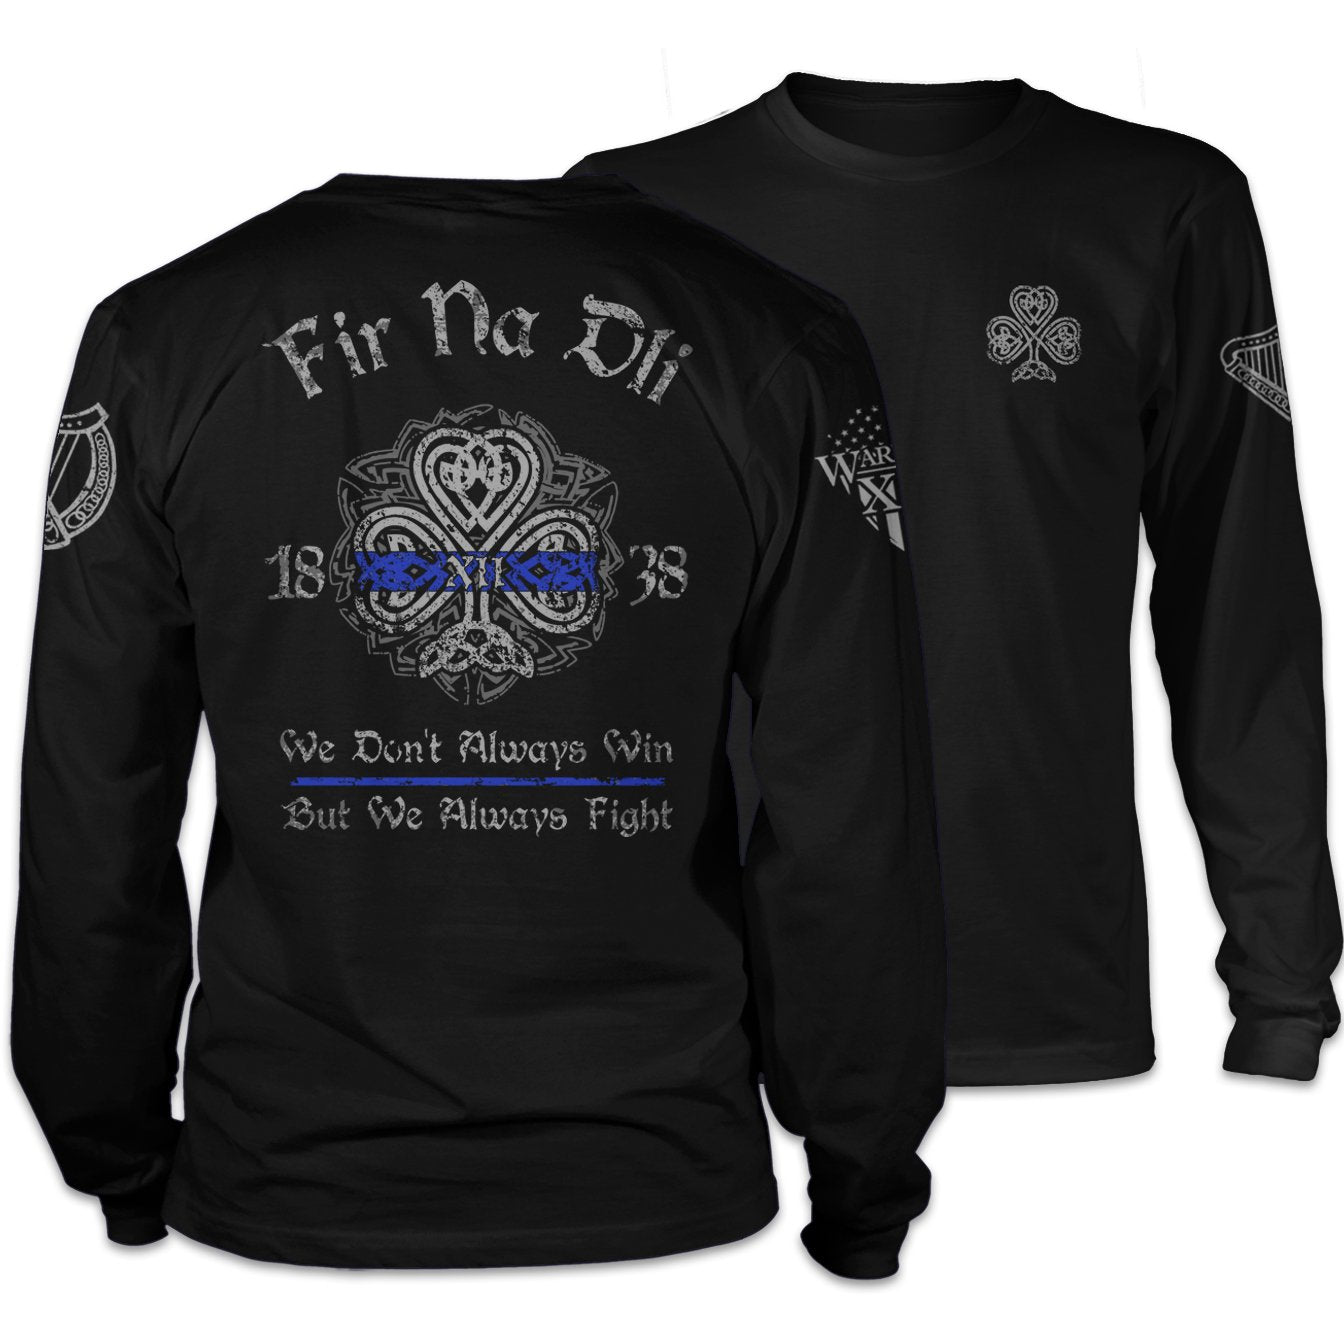 Fir Na Dli Long Sleeve